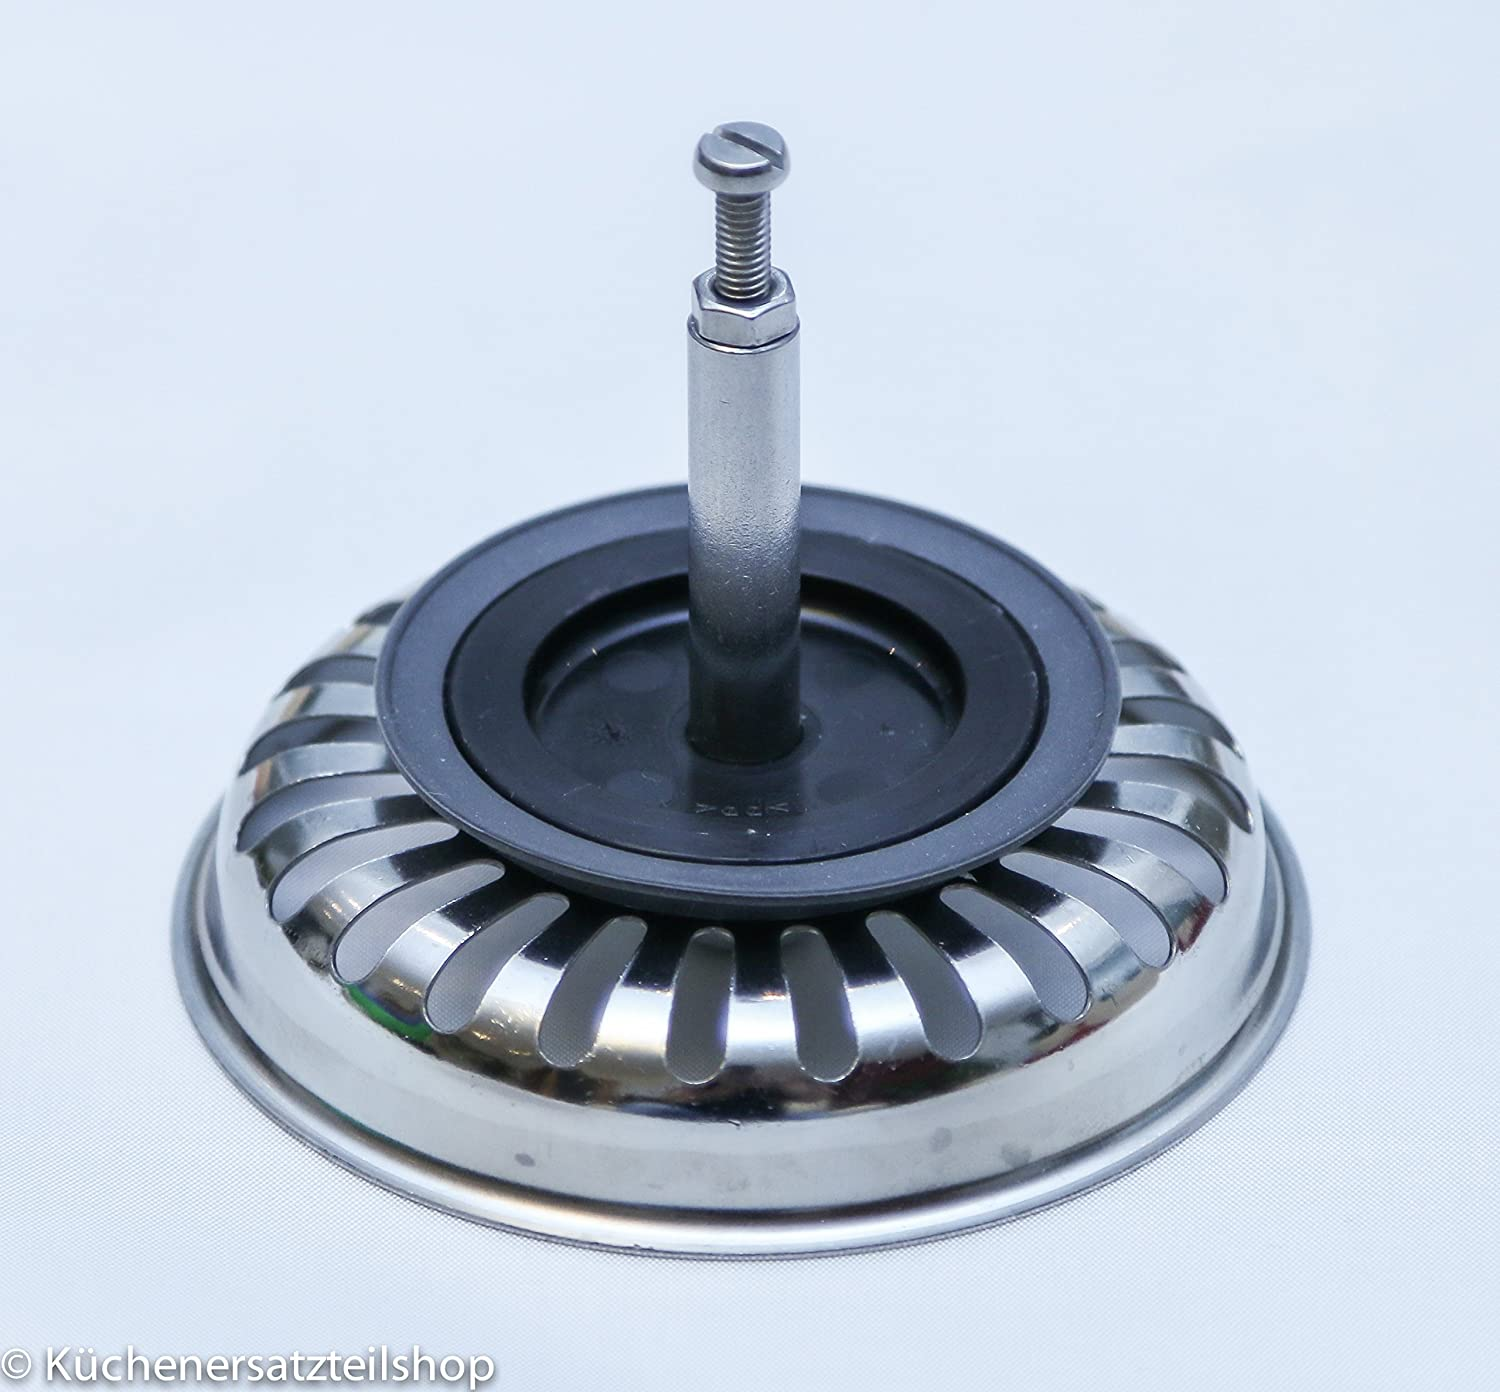 Blanco Basket Strainer 3.5 Inches For Eccentric Operation 24 Slots